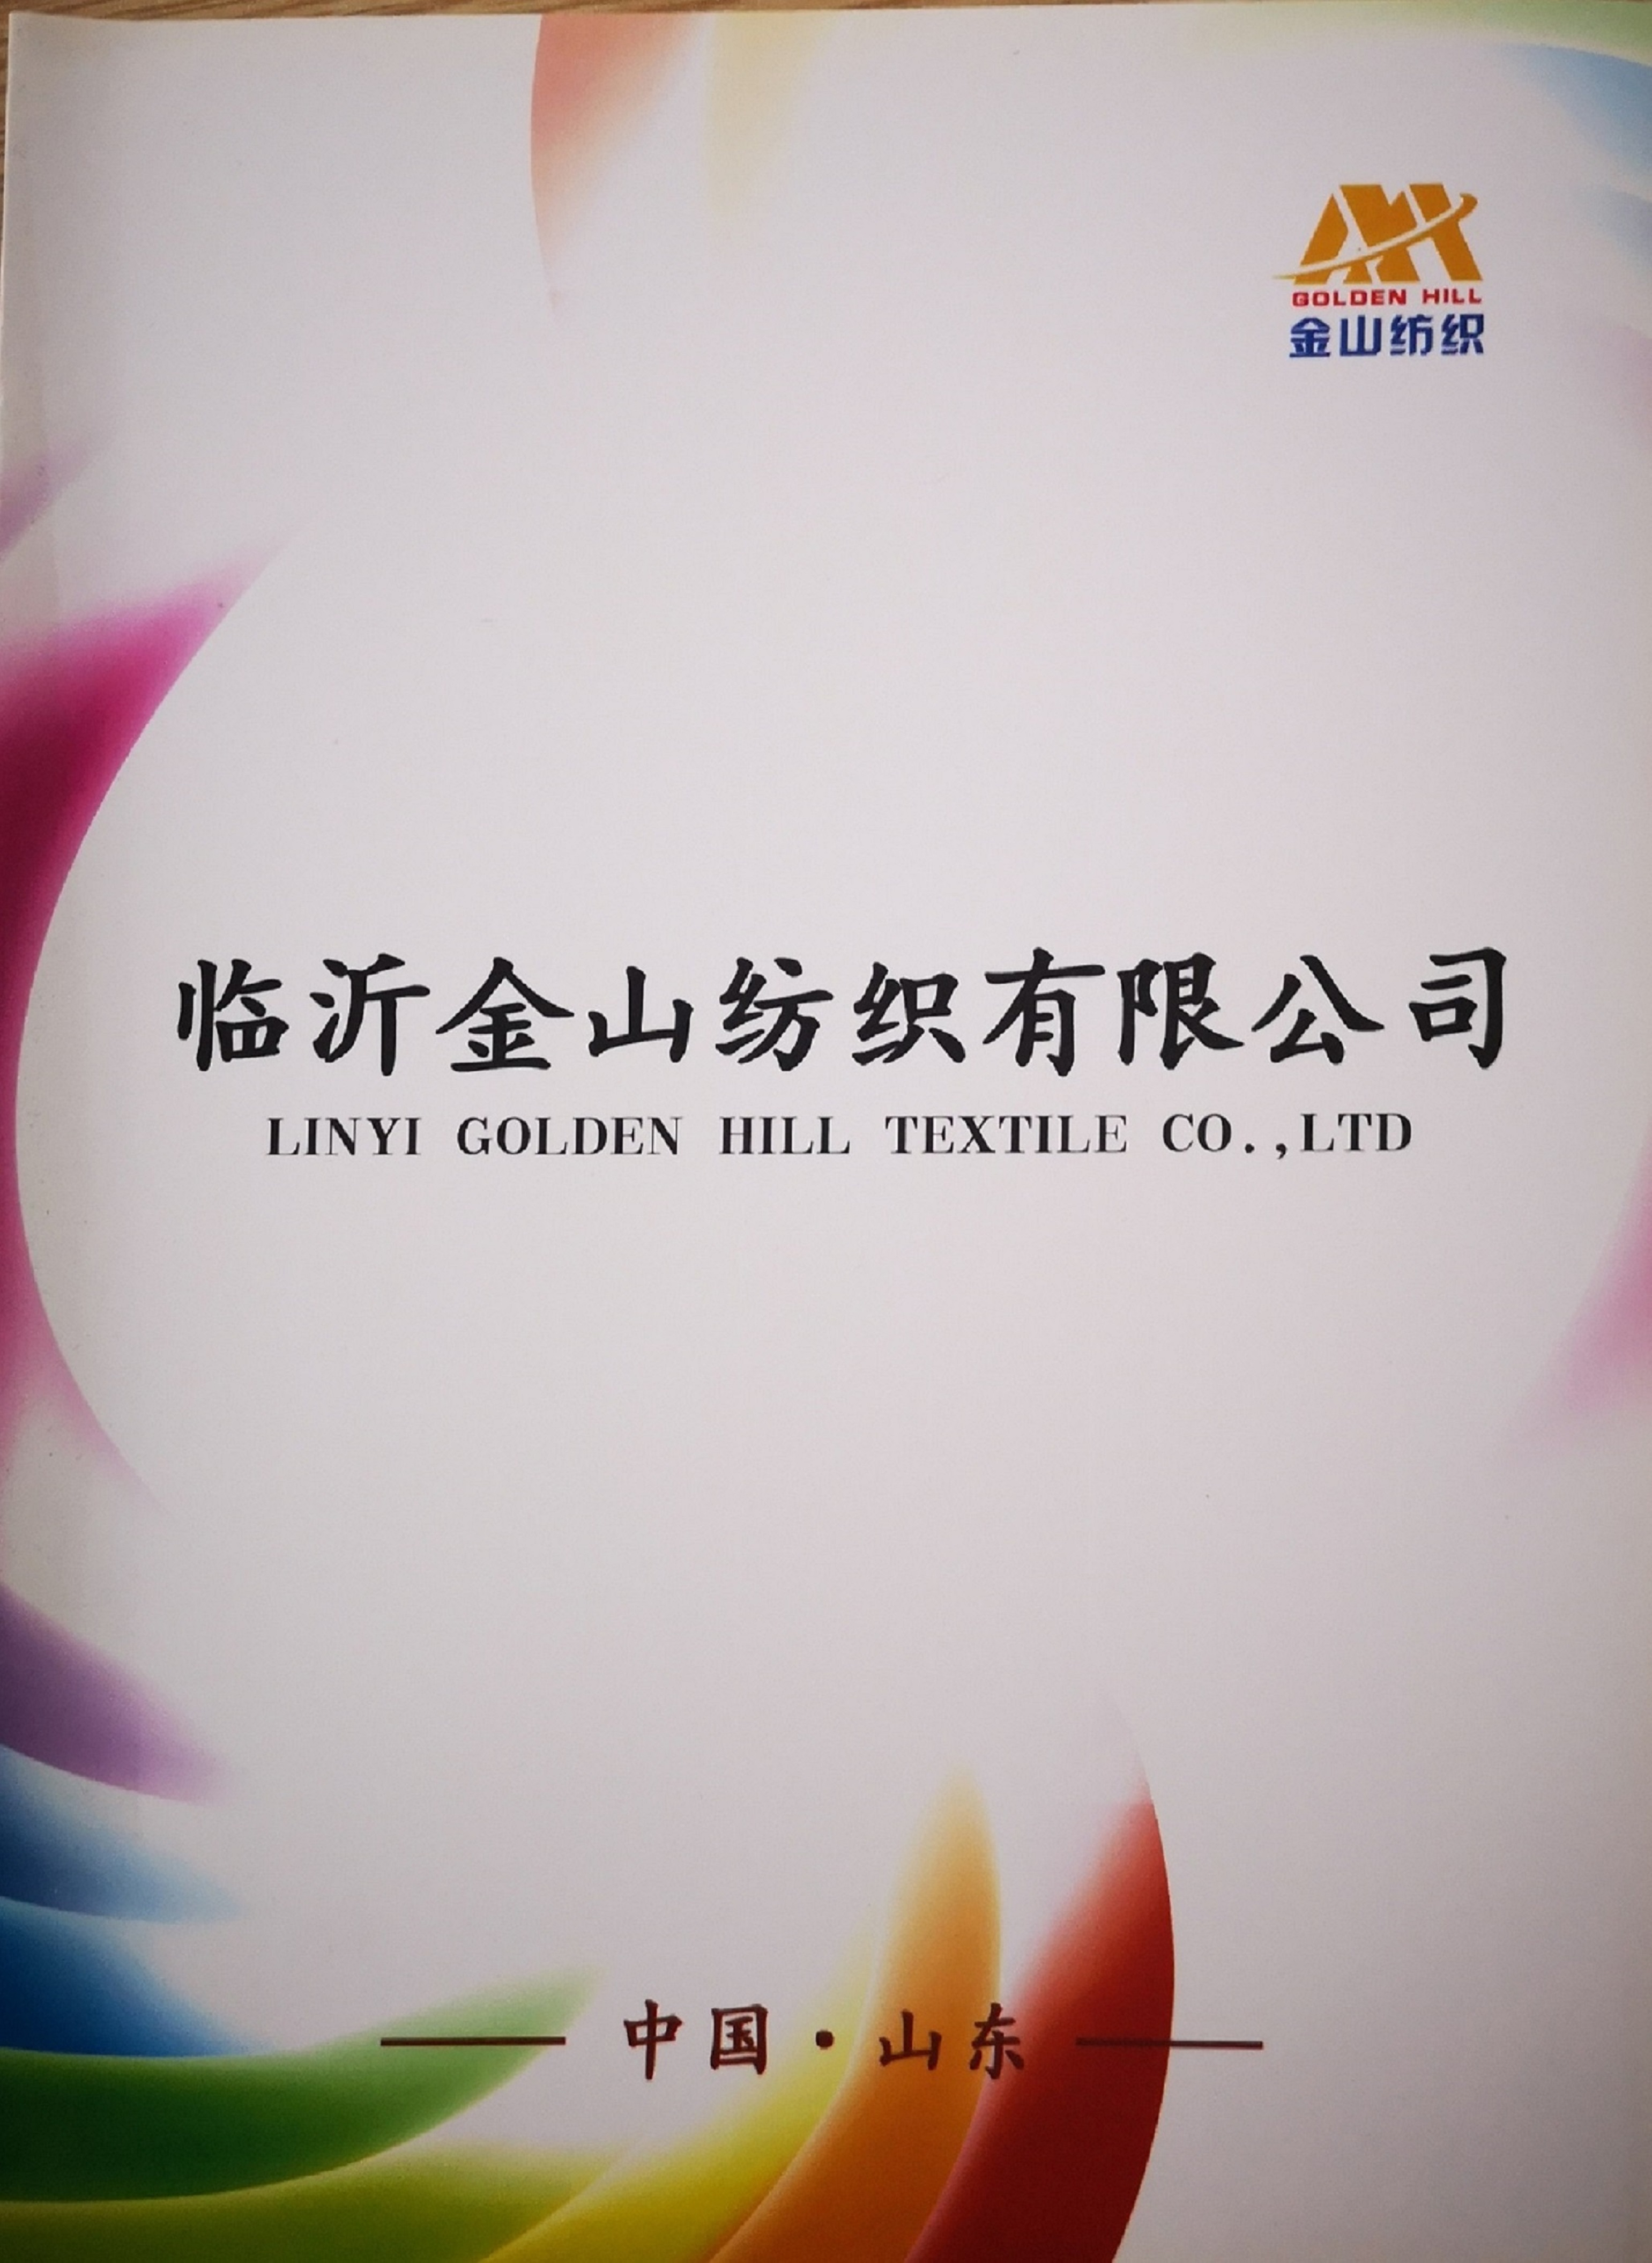 linyi golden hill textile co.ltd